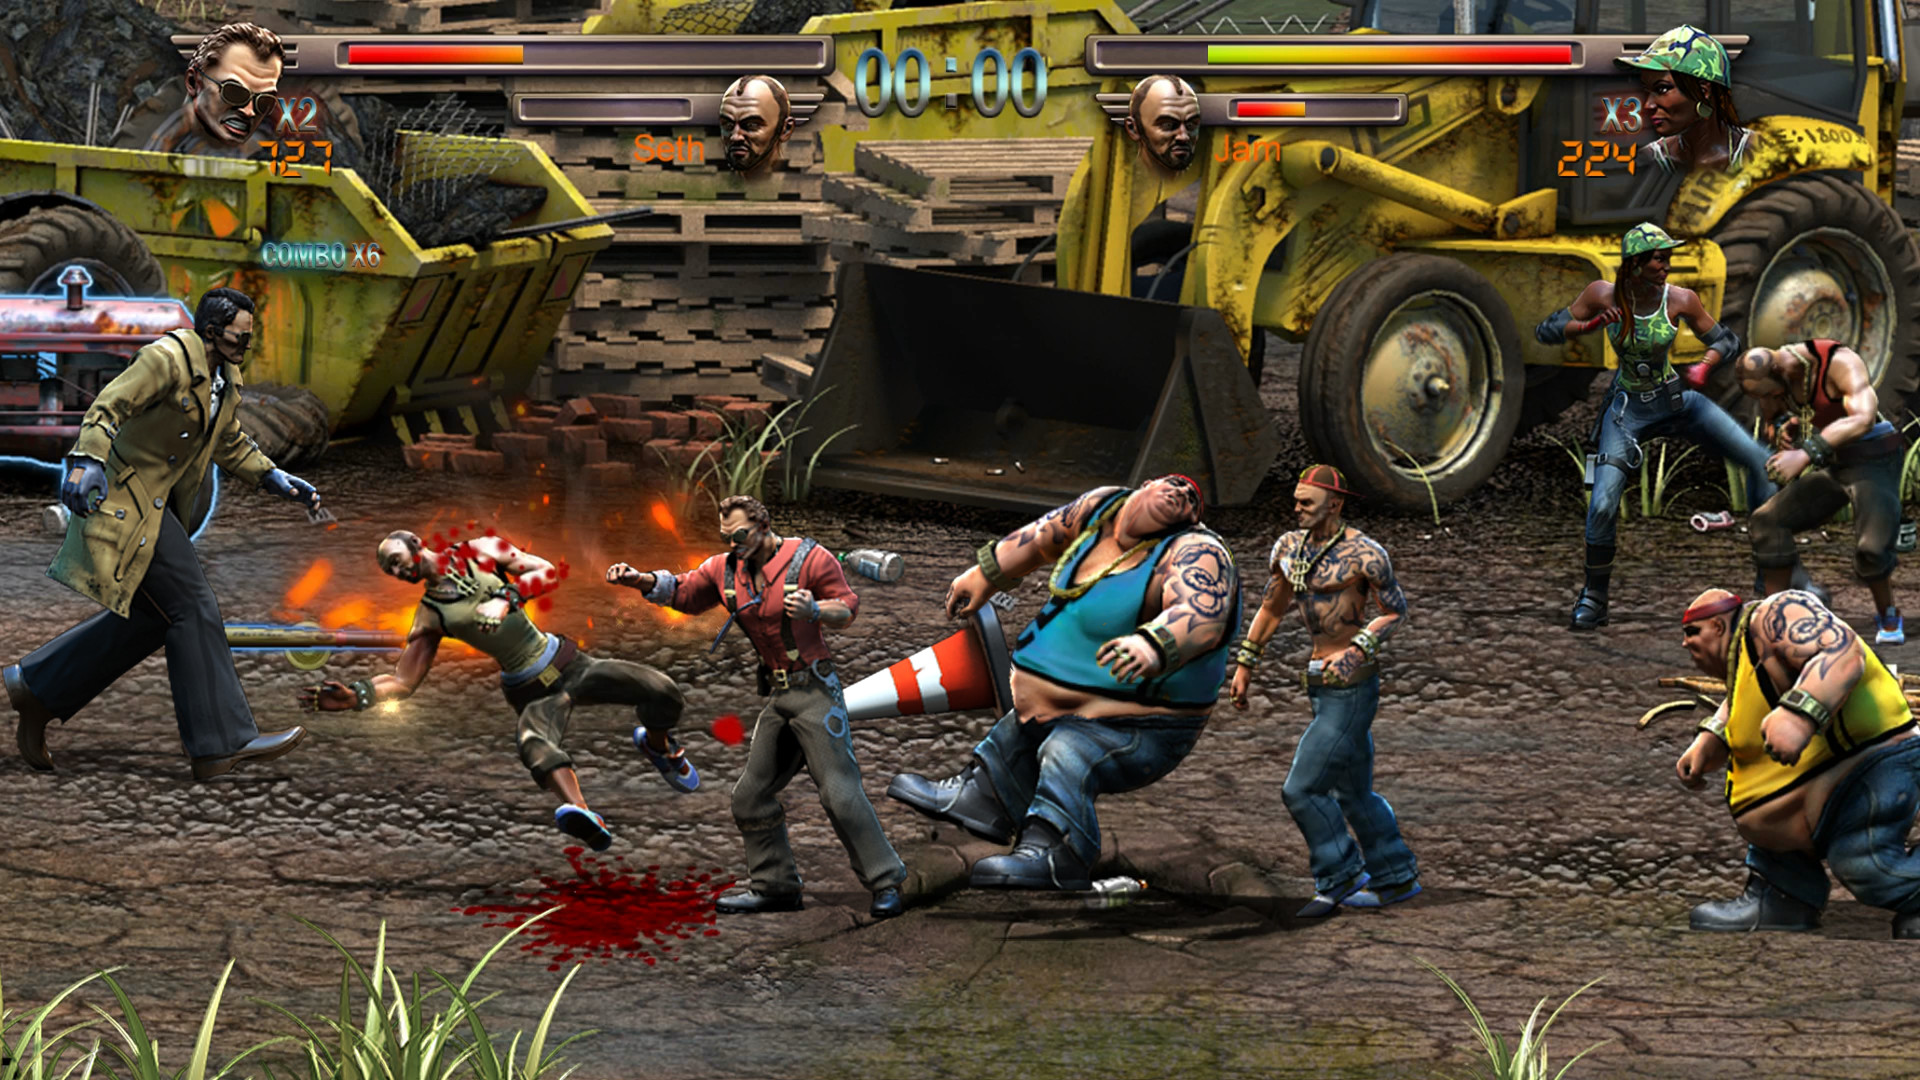 Arcade style Raging Justice is out now on PC and consoles